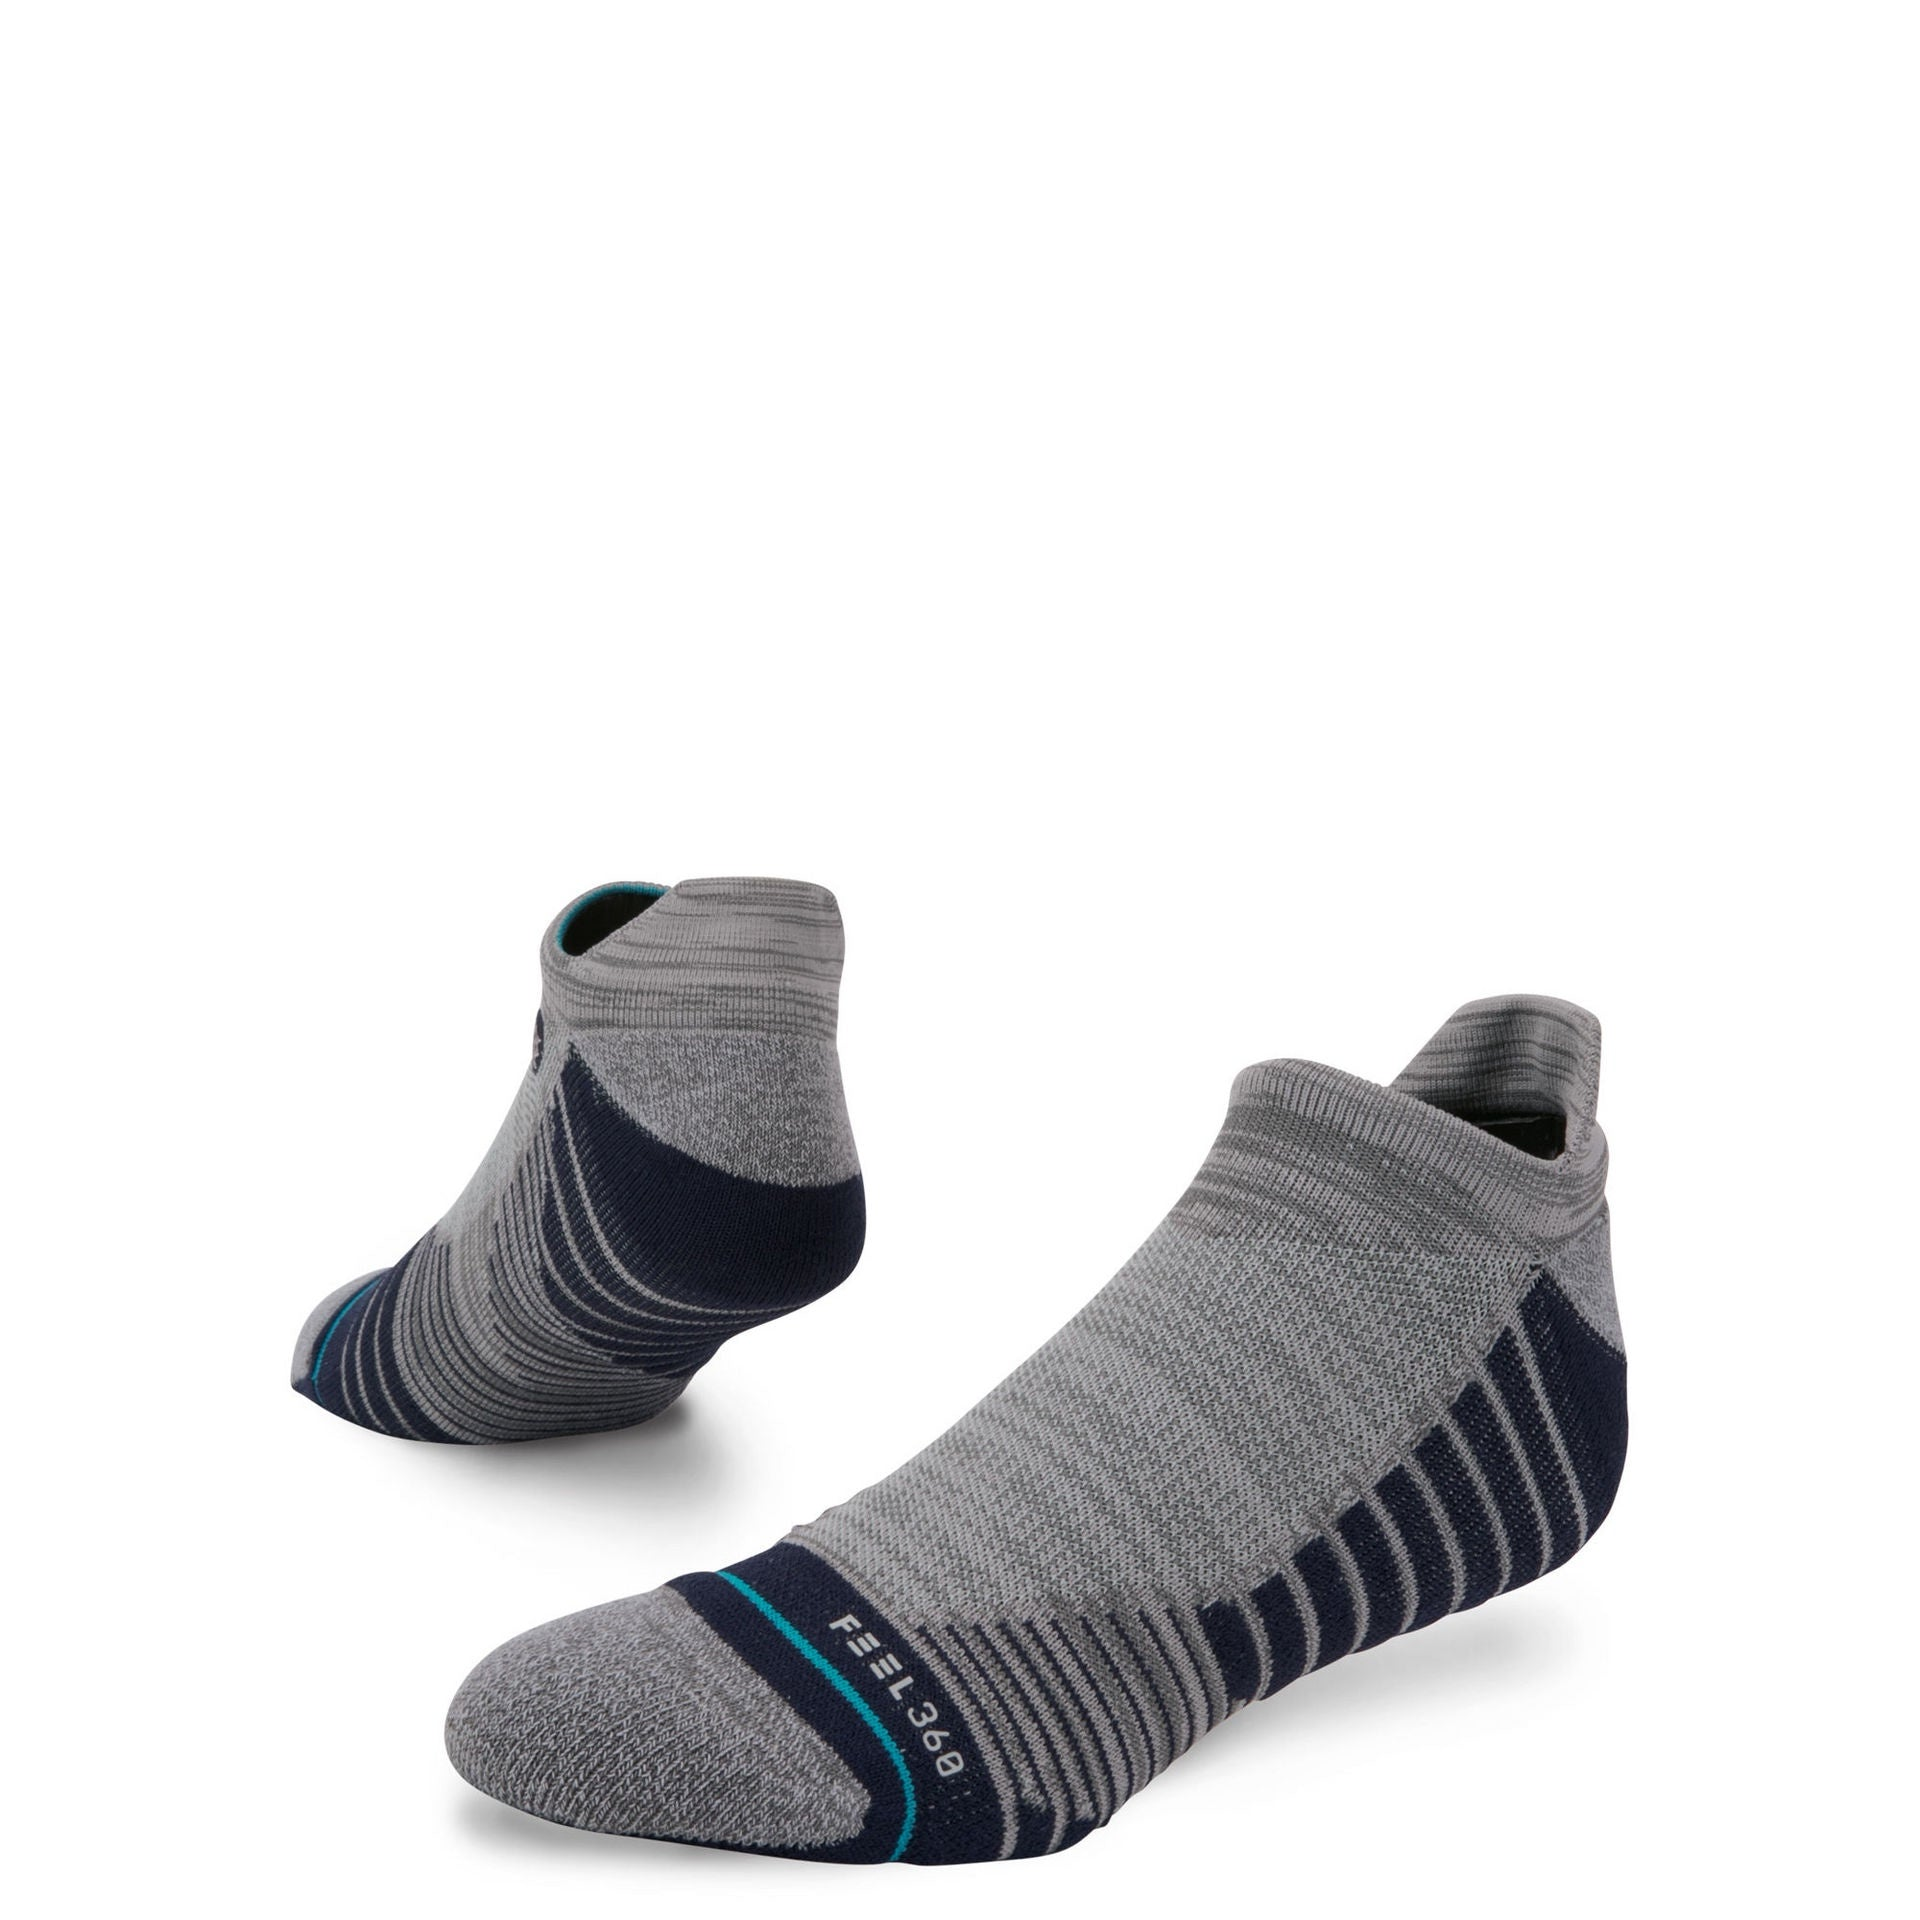 Stance Performance Cushion Quick Dry Sport Tab Socks